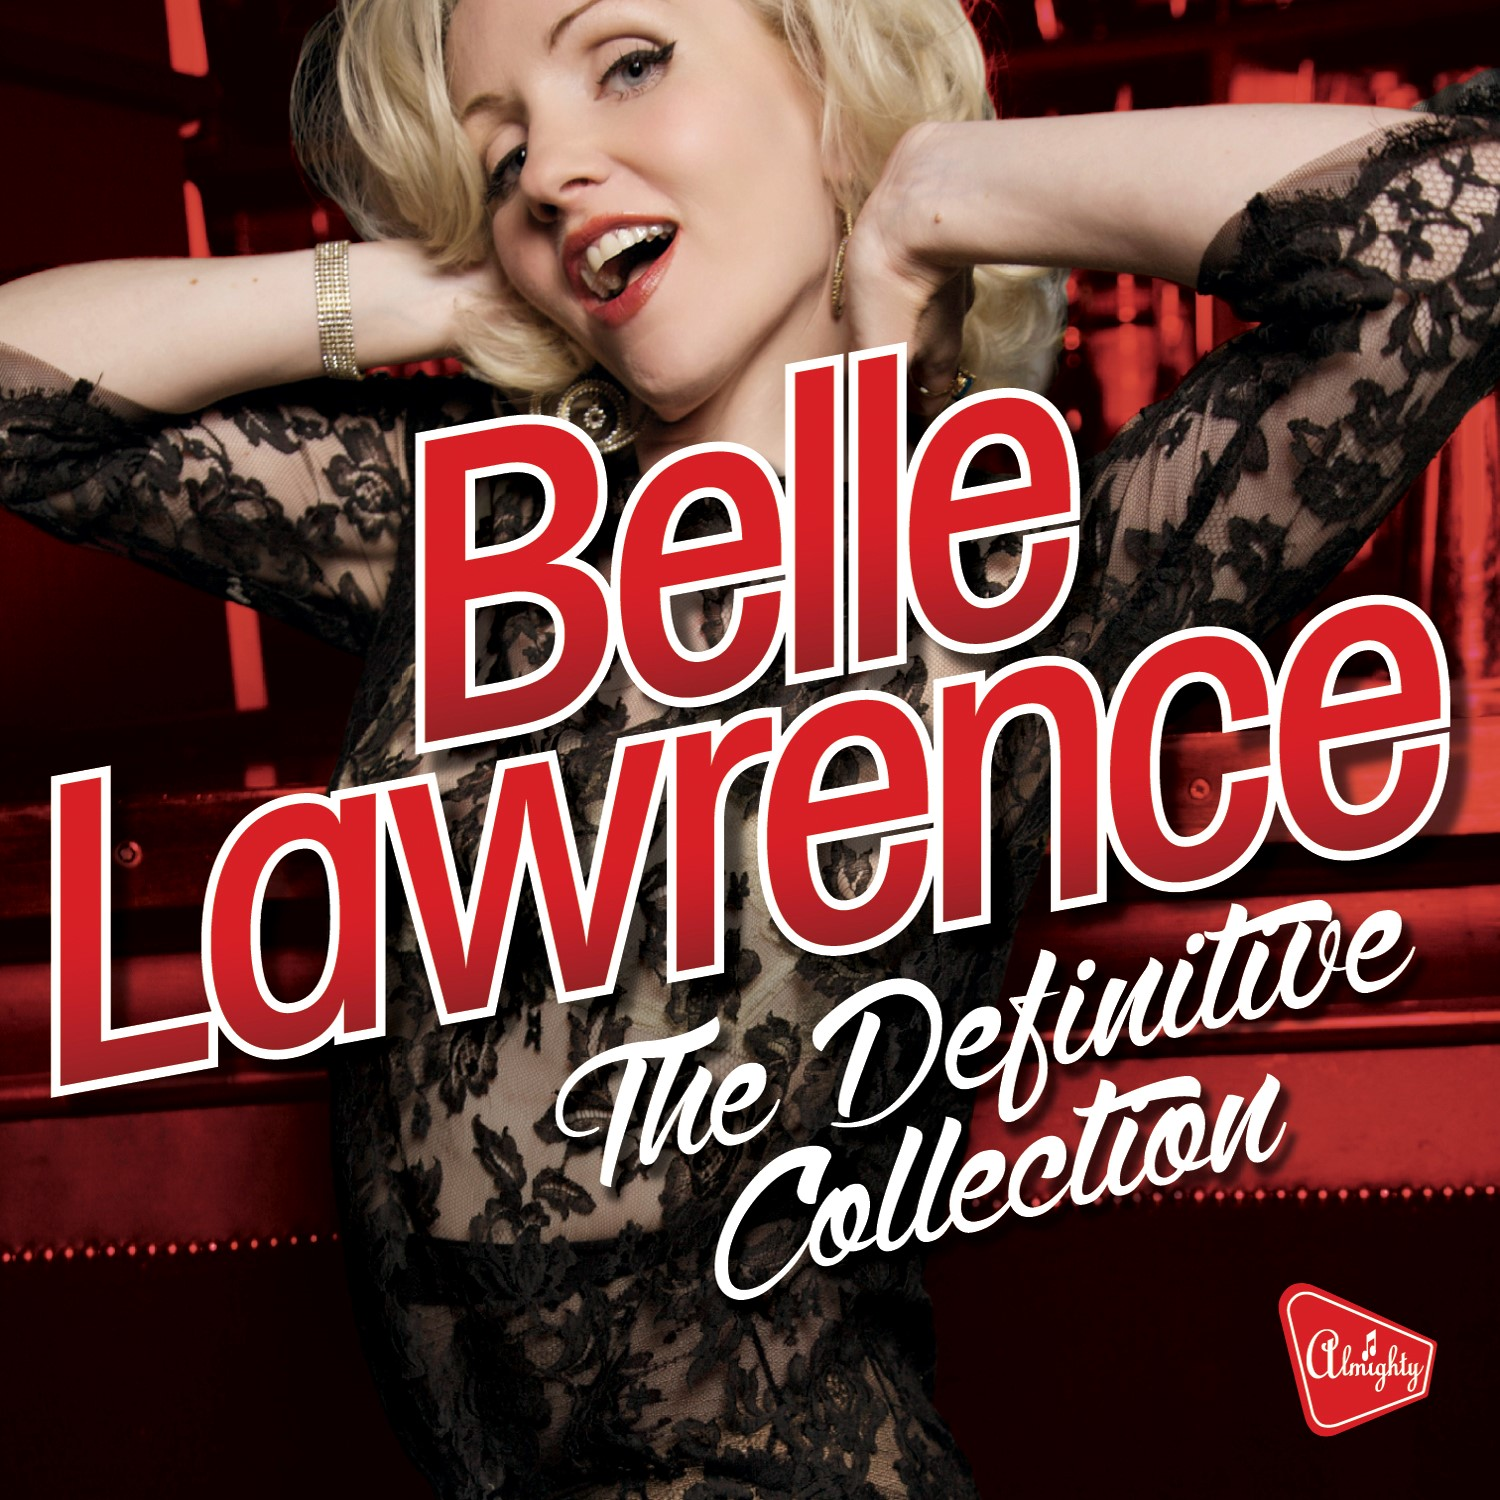 Belle Lawrence - Belle Lawrence has been recording with Almighty since 2002 and due to the success of her dance hits over the years, she has become our fans' favourite Almighty darling! With a host of singles and three fantastic albums, it would be hard to find an Almighty fan without Belle Lawrence in their collection!Read More →